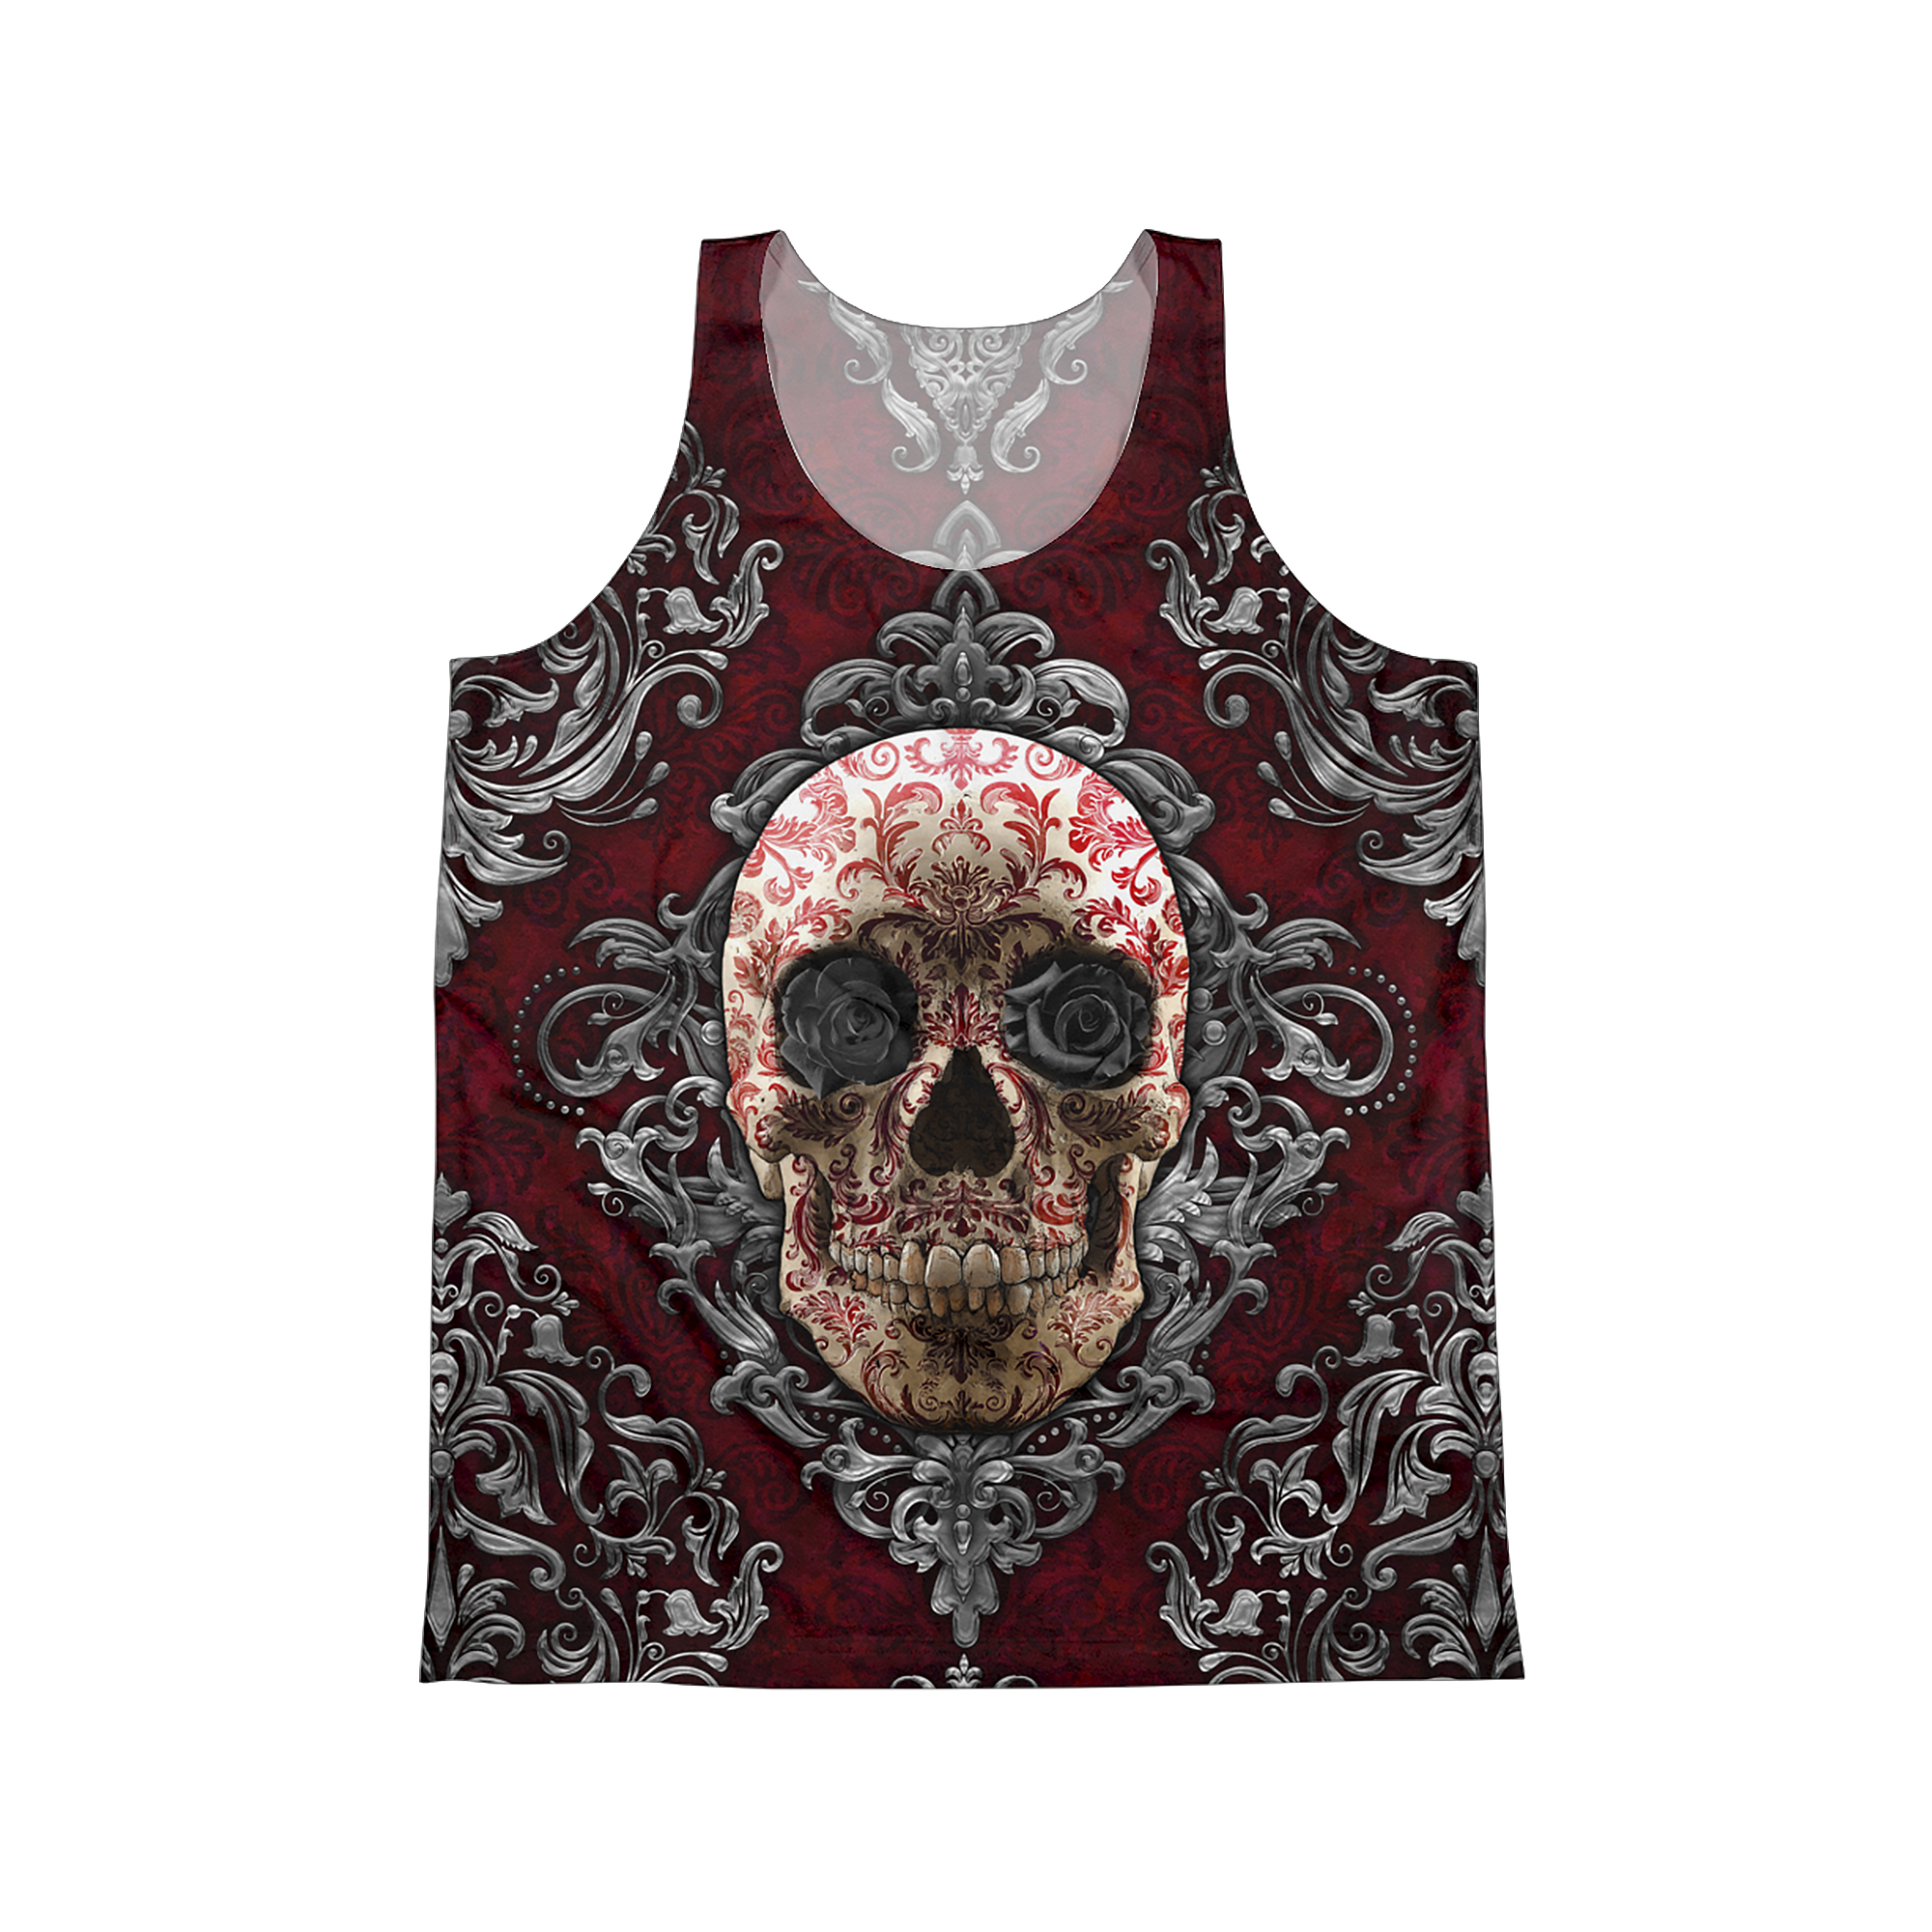 81bfc1144026a1 Gothic Skull Tank Top